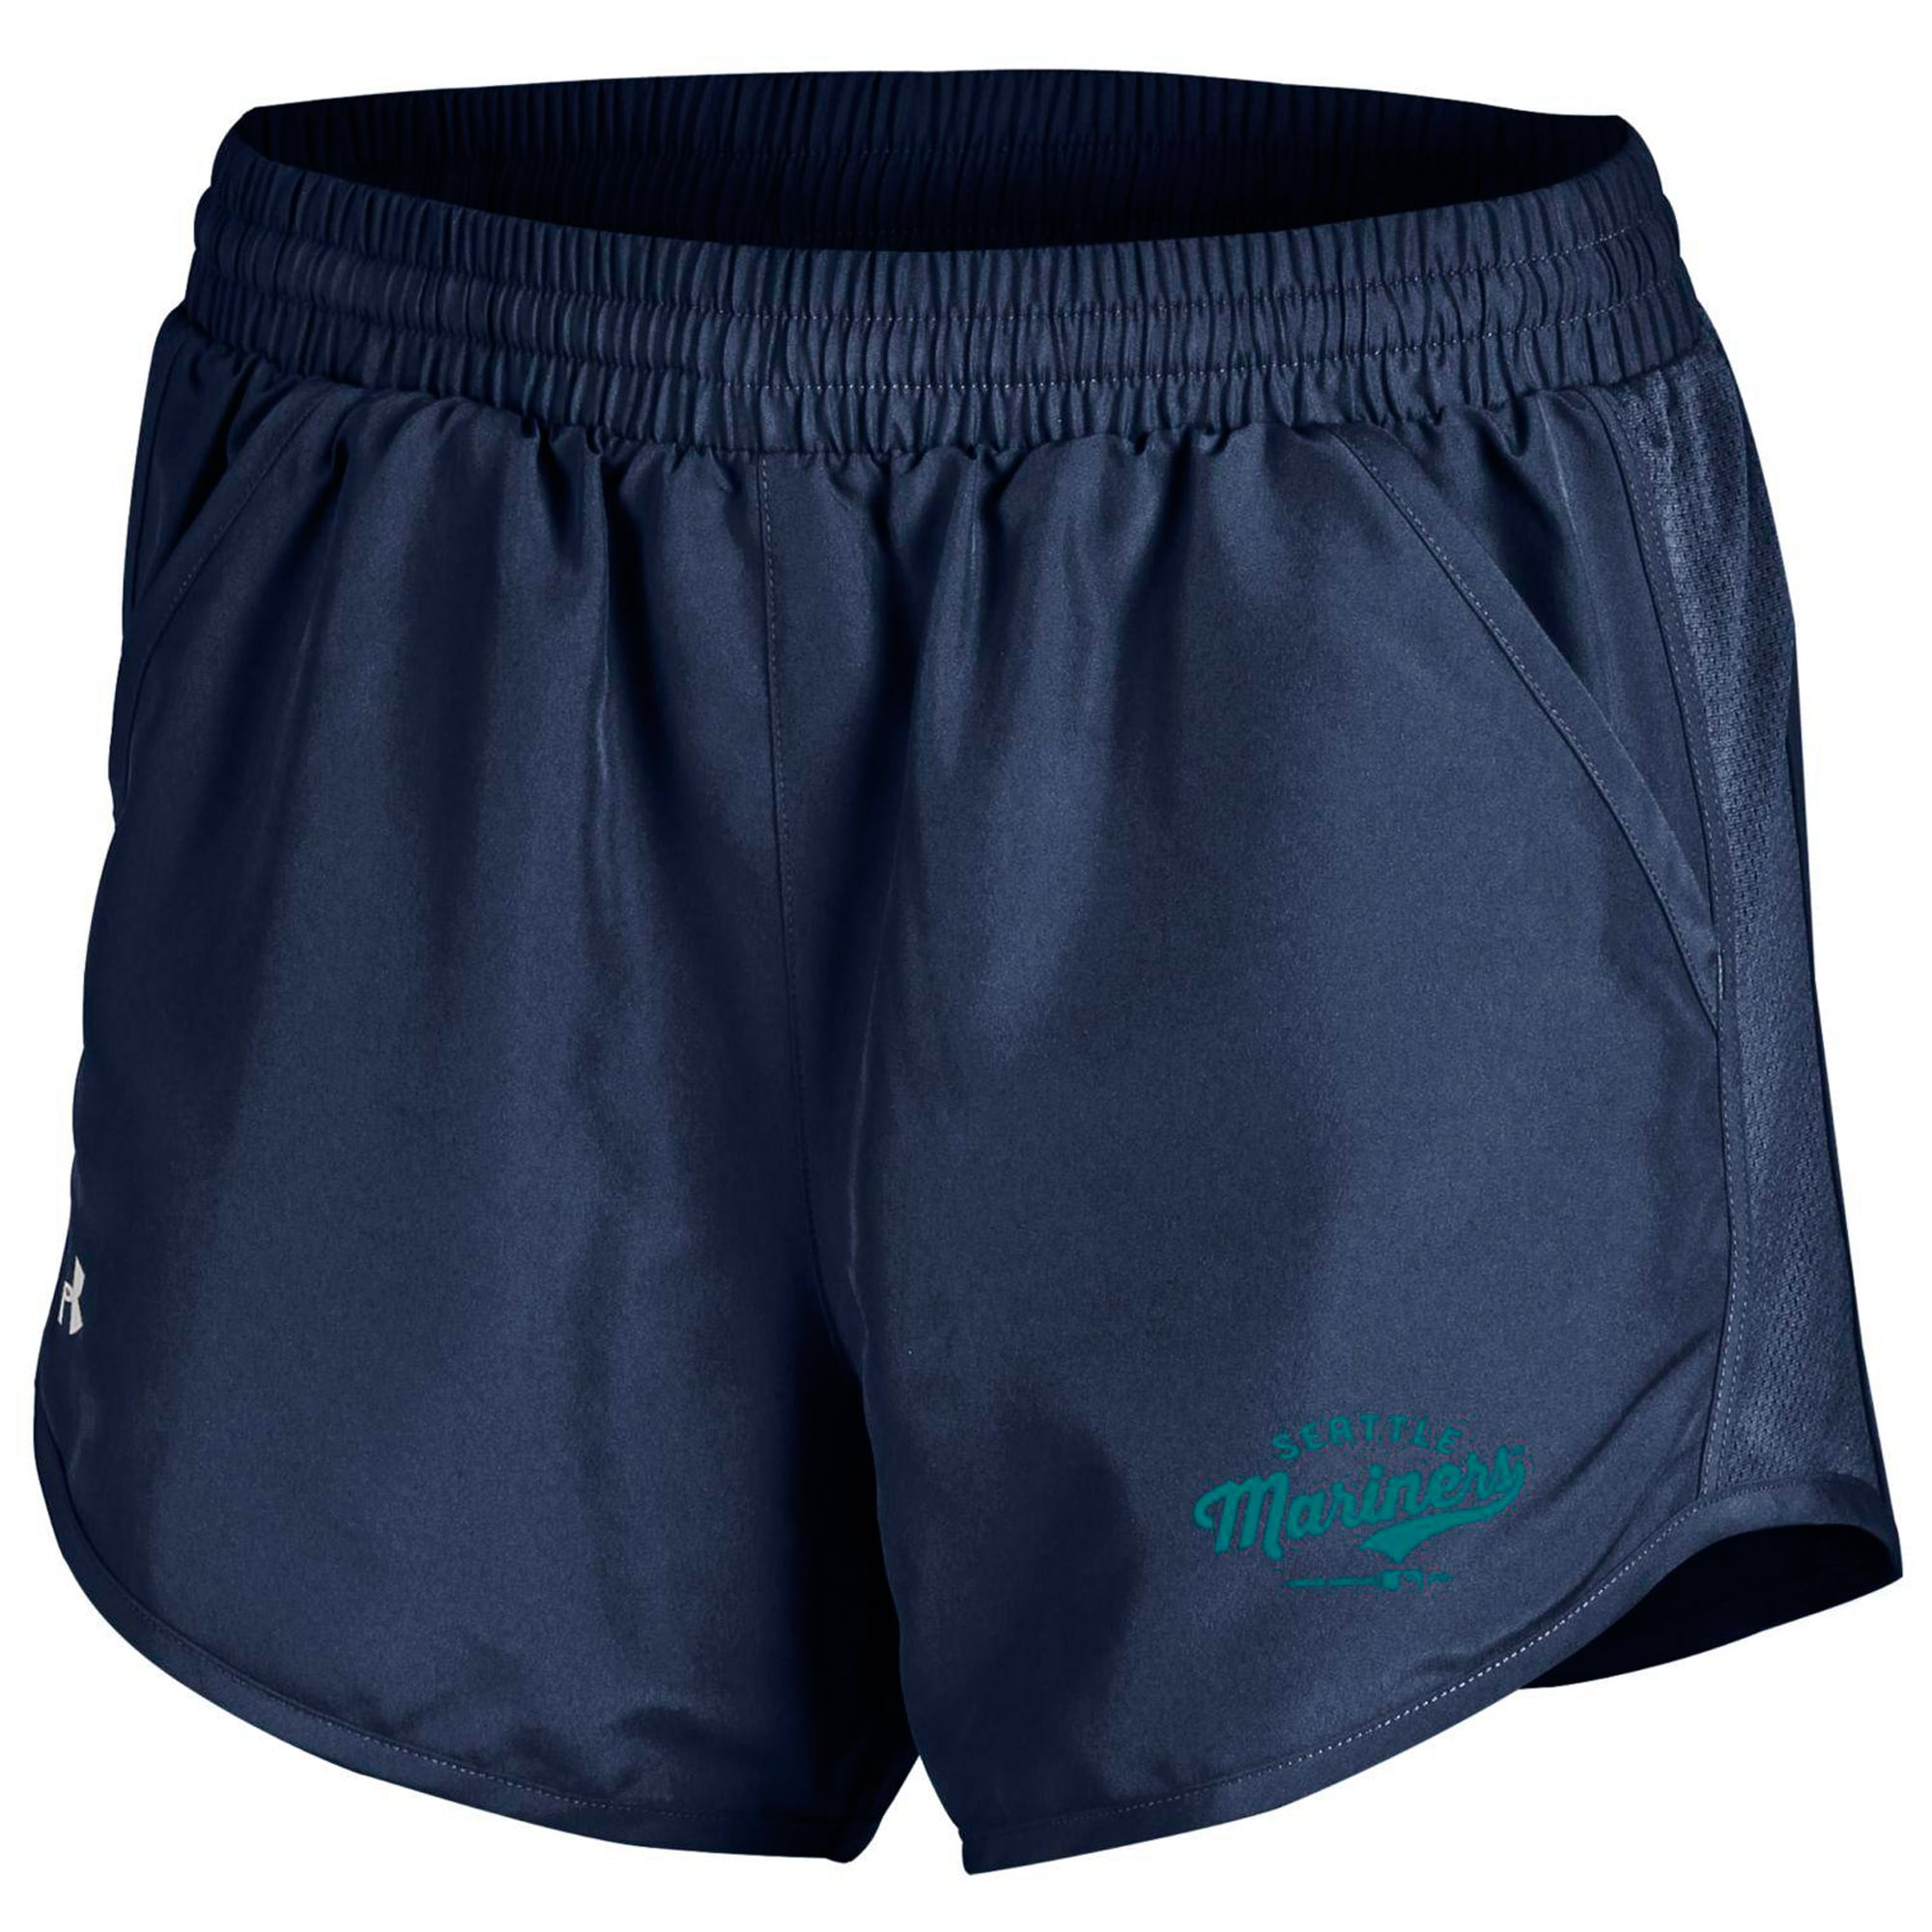 Seattle Mariners Under Armour Women's Fly By Performance Running Shorts - Navy